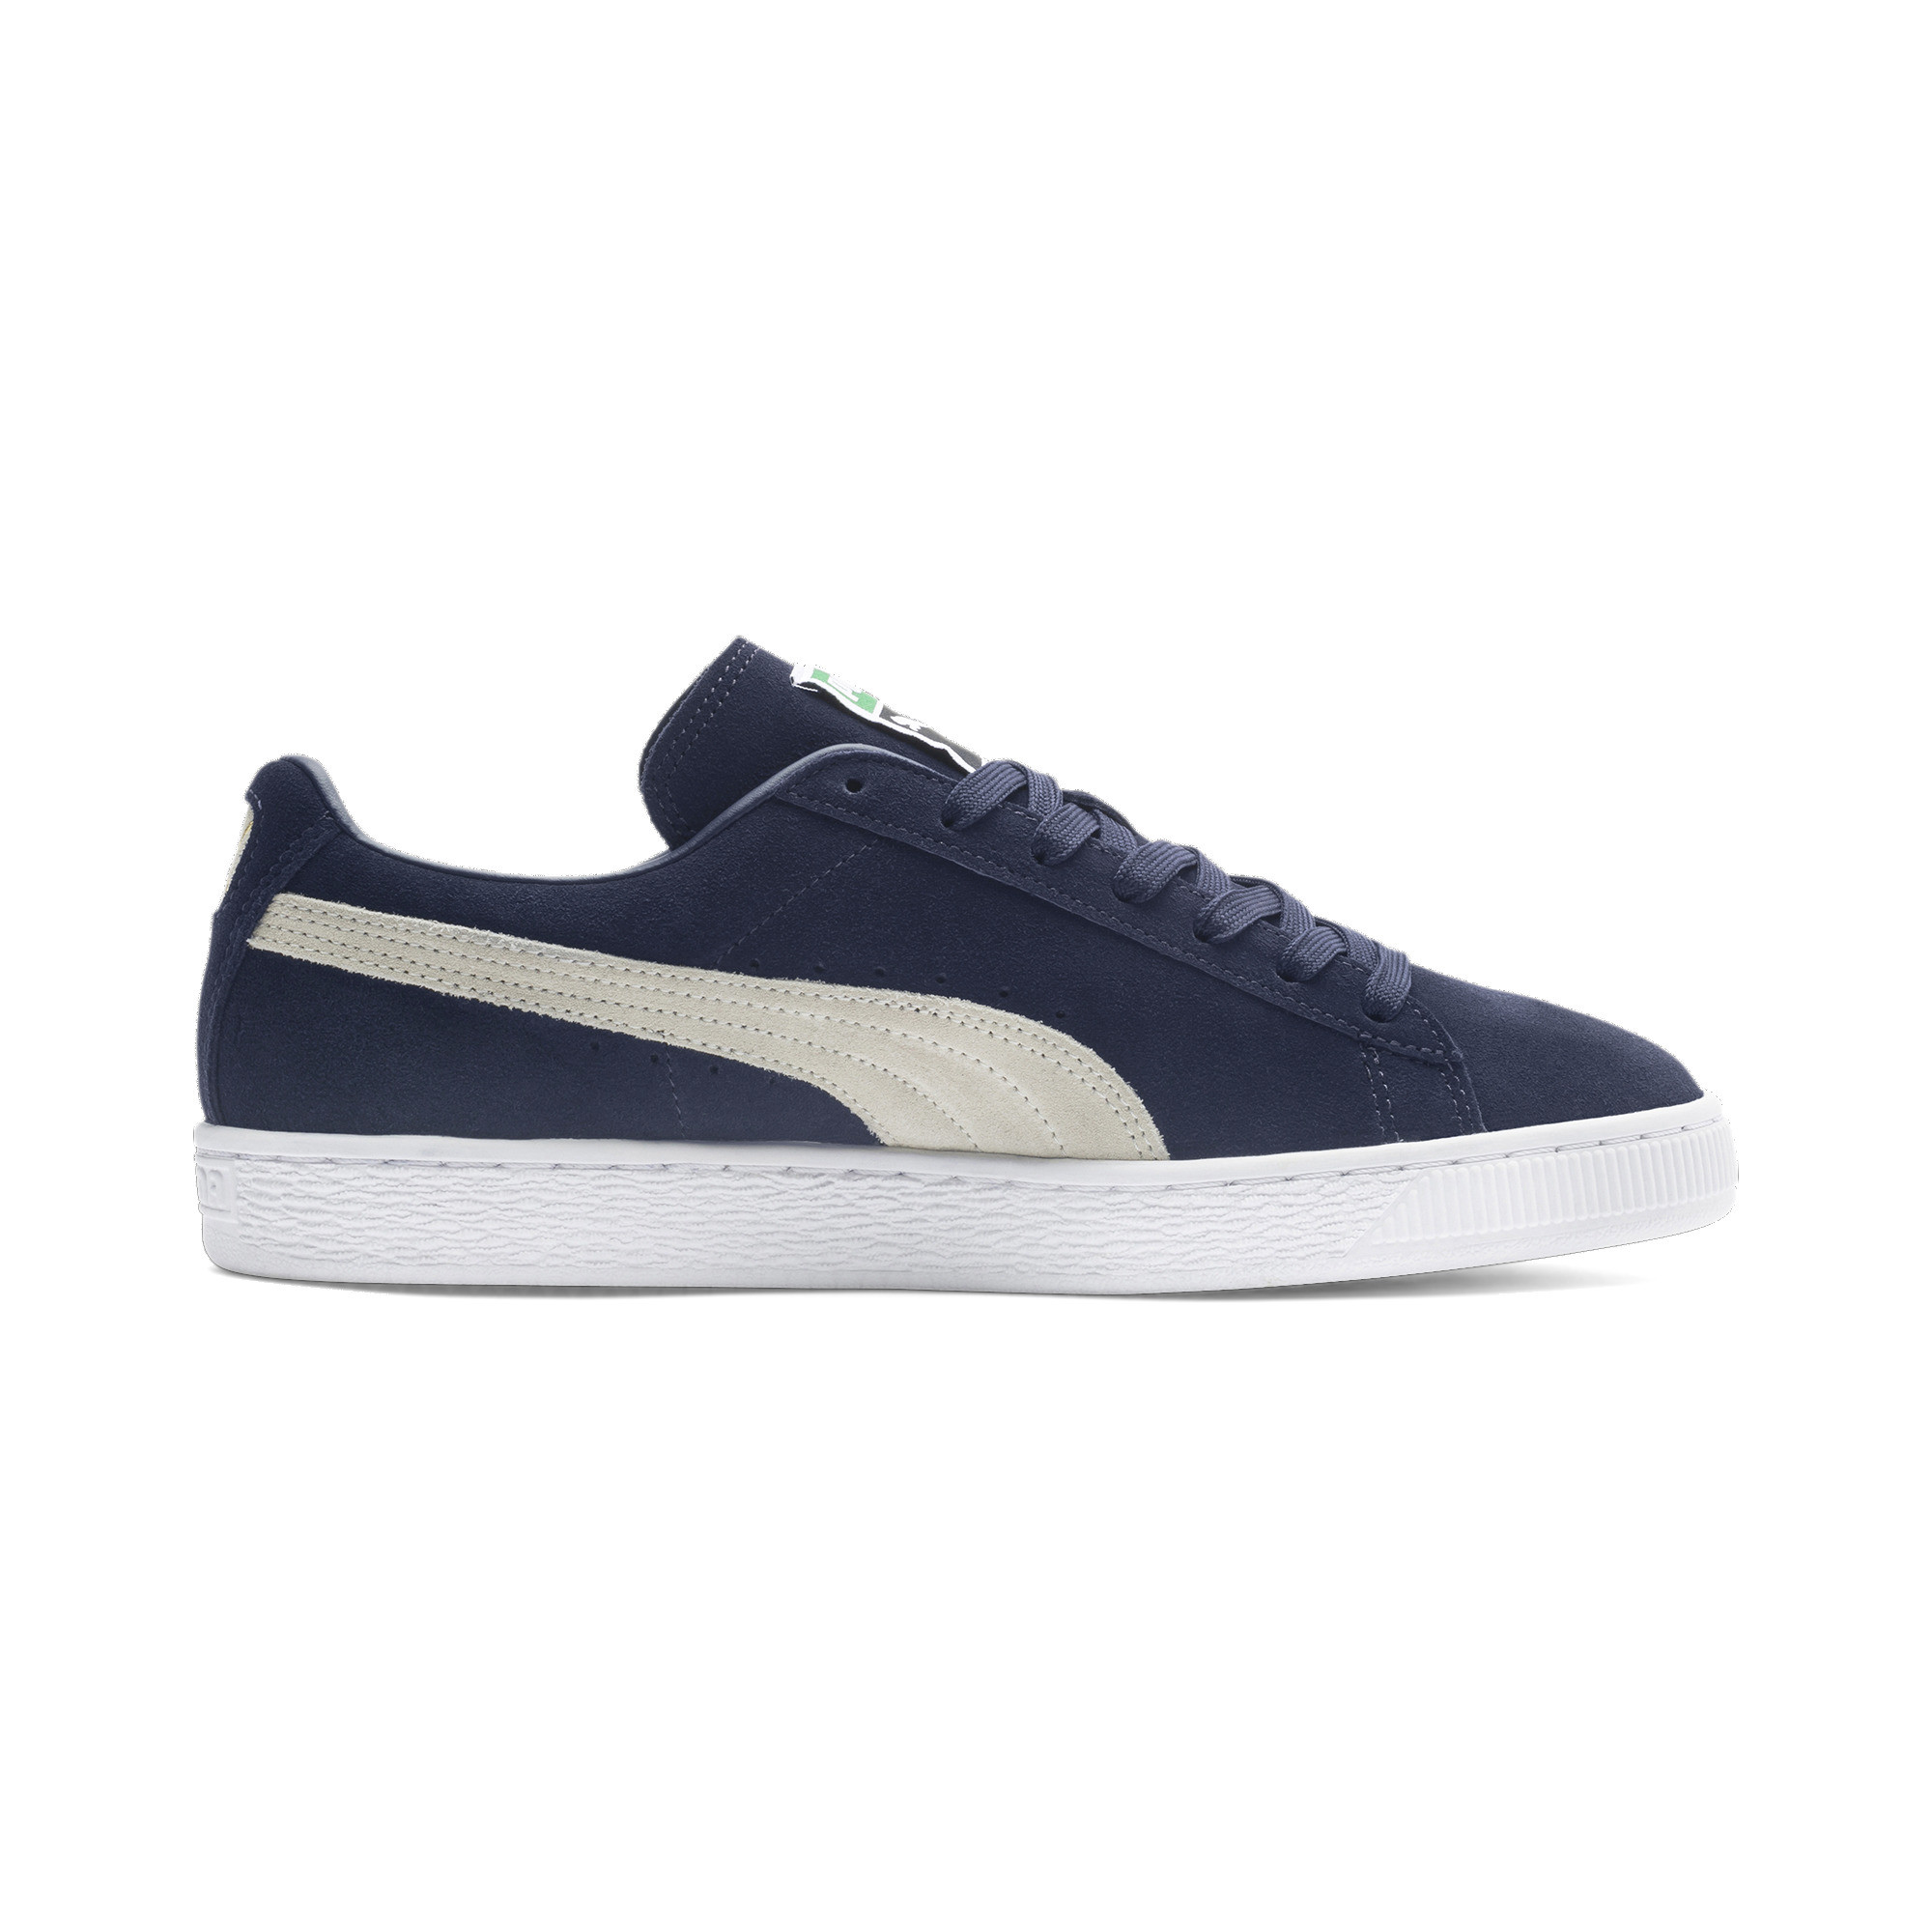 PUMA-Men-039-s-Suede-Classic-Sneakers thumbnail 6